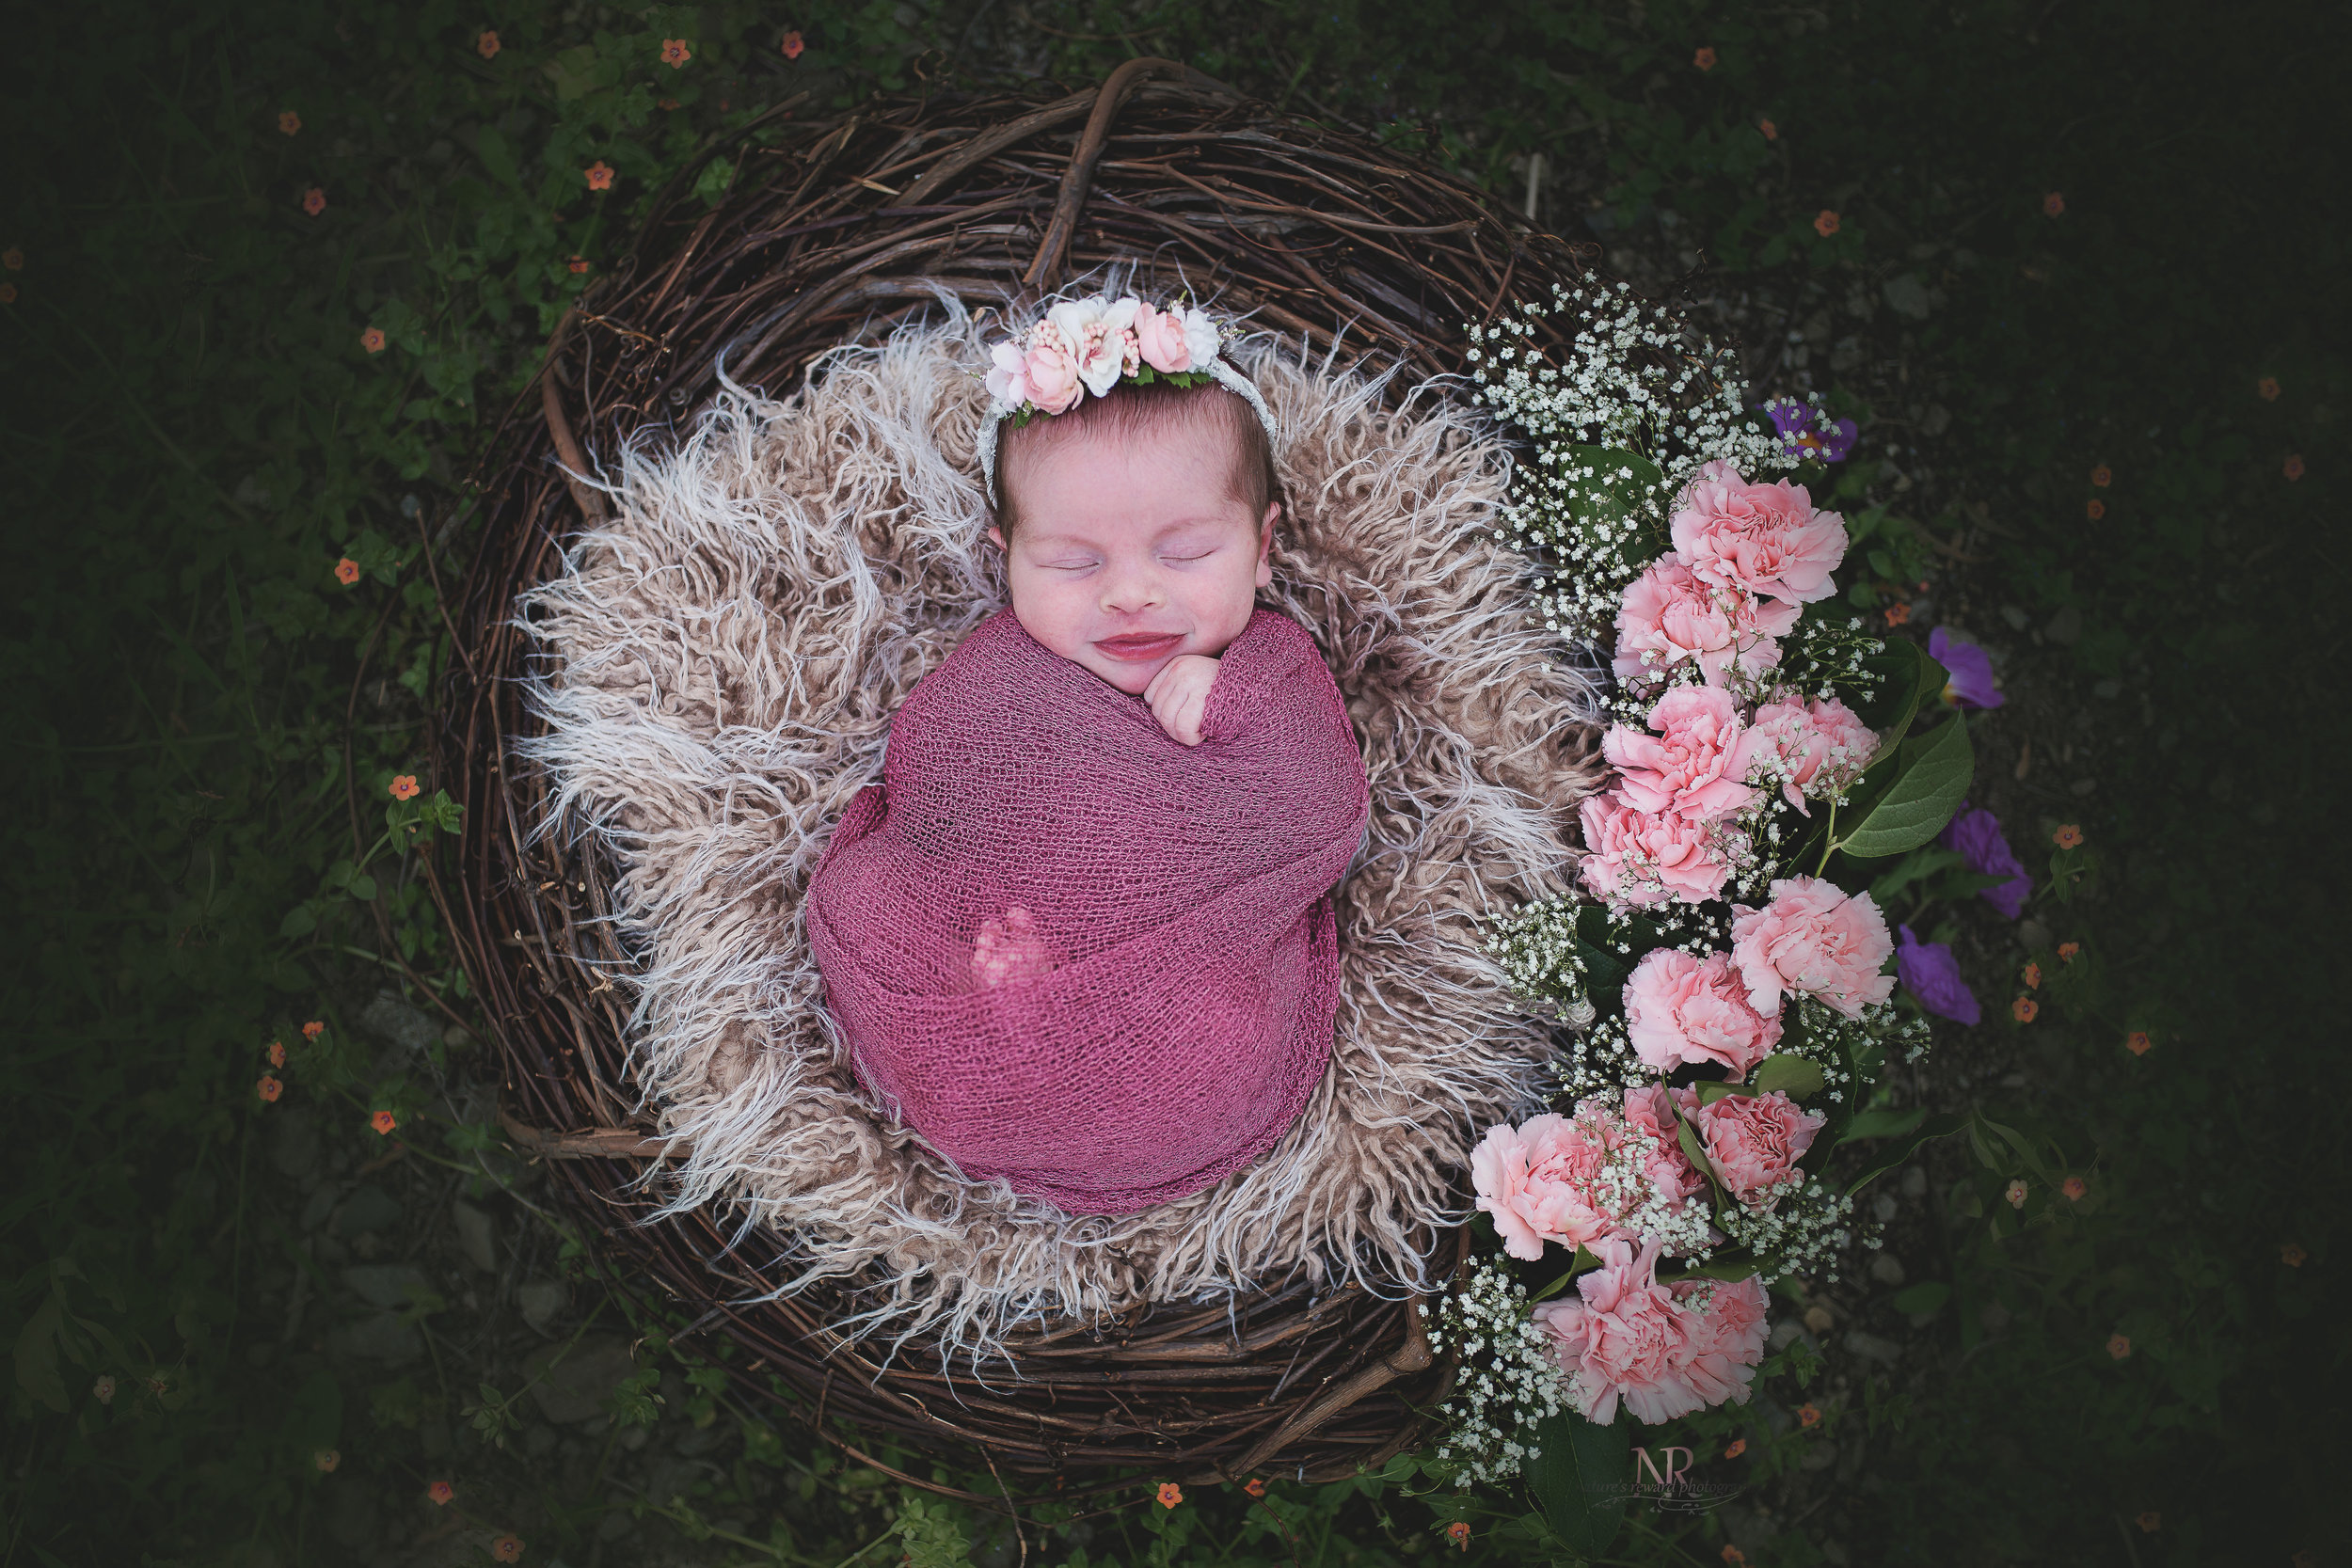 Newborn Baby girl in a nest adorned with carnations and baby breath.